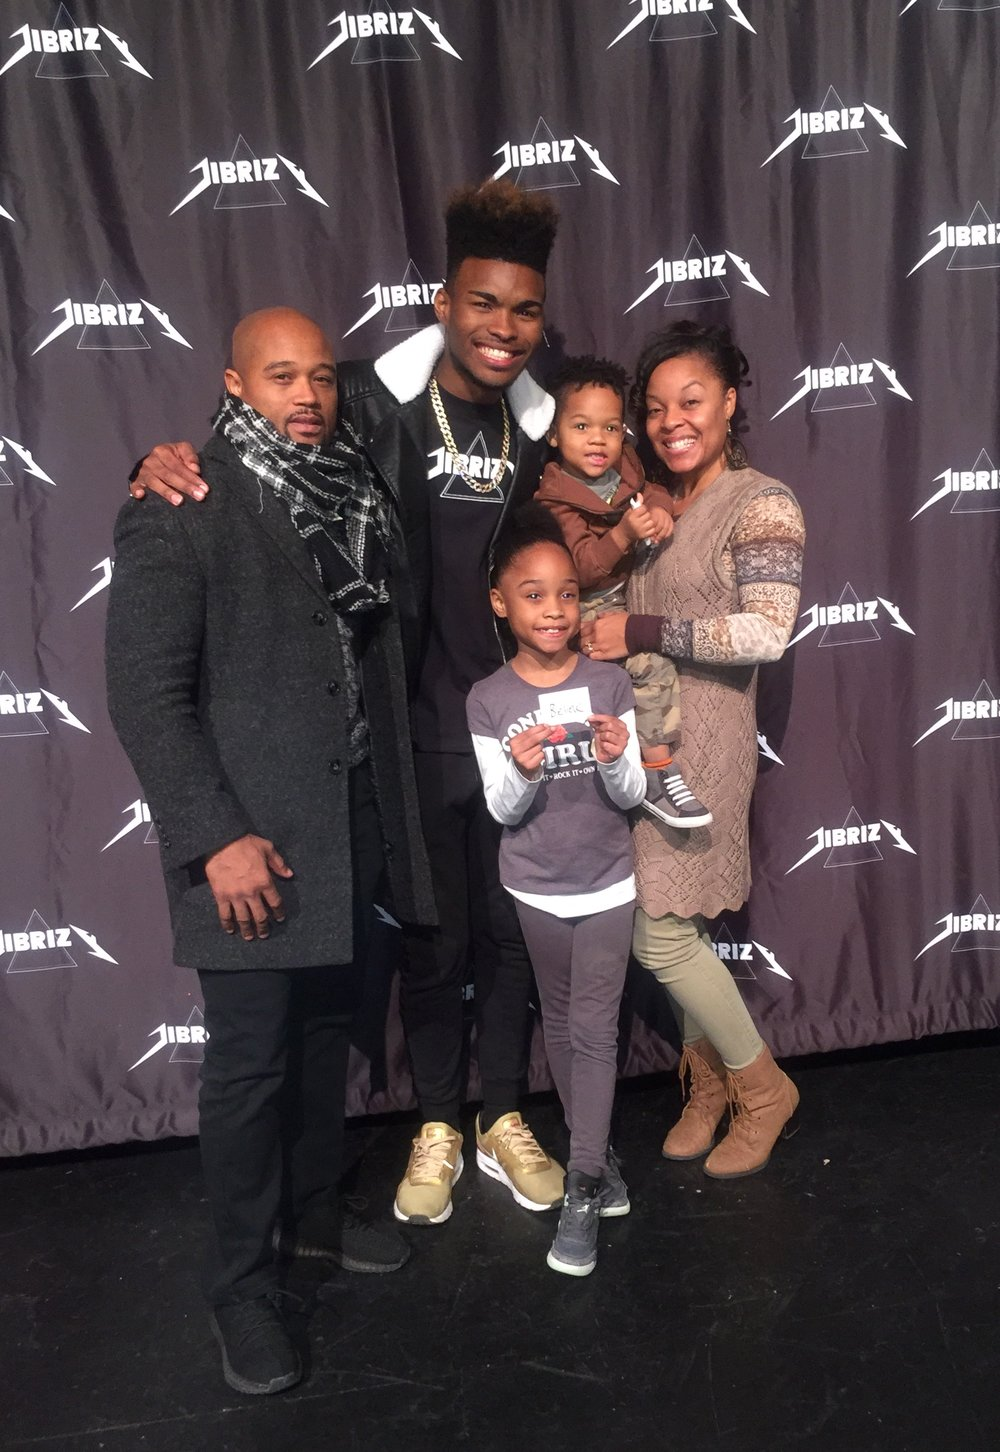 Magic Music Management Atlanta Jibrizy Black Magic Tour Chicago.jpg